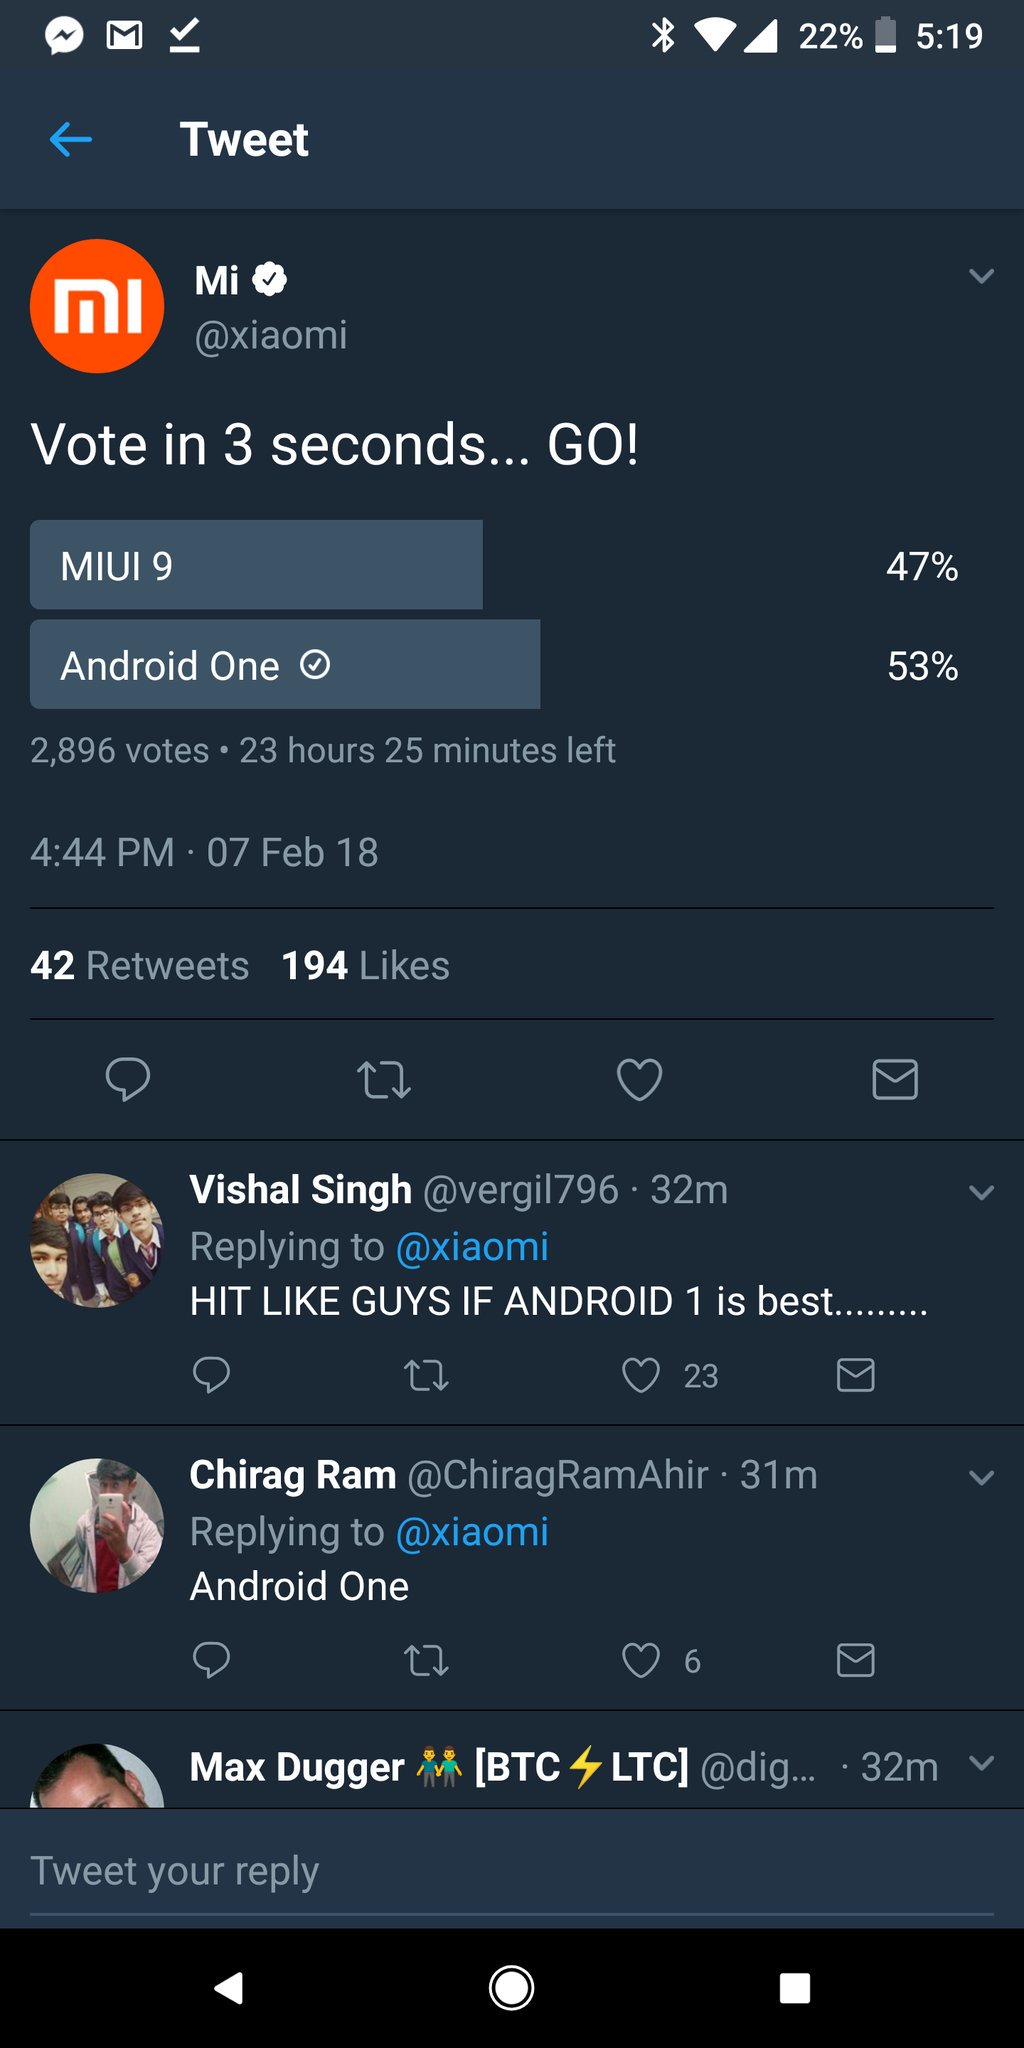 xiaomi android one vs miui twitter (1) — mobileCTRL